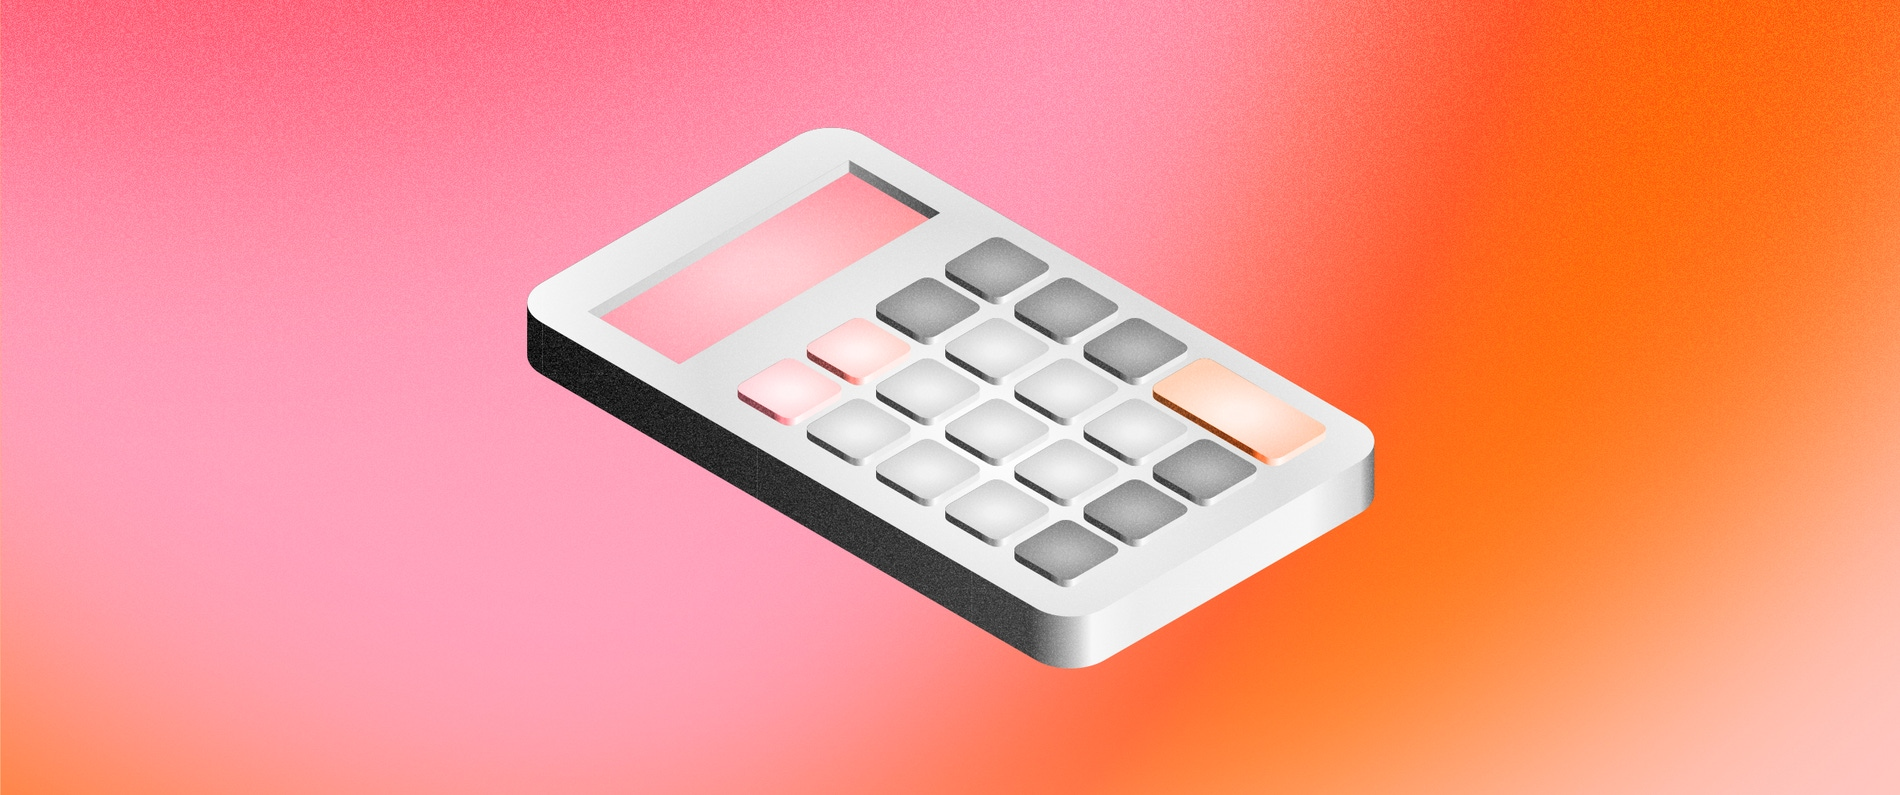 Cover image featuring a calculator on top of a coral background.